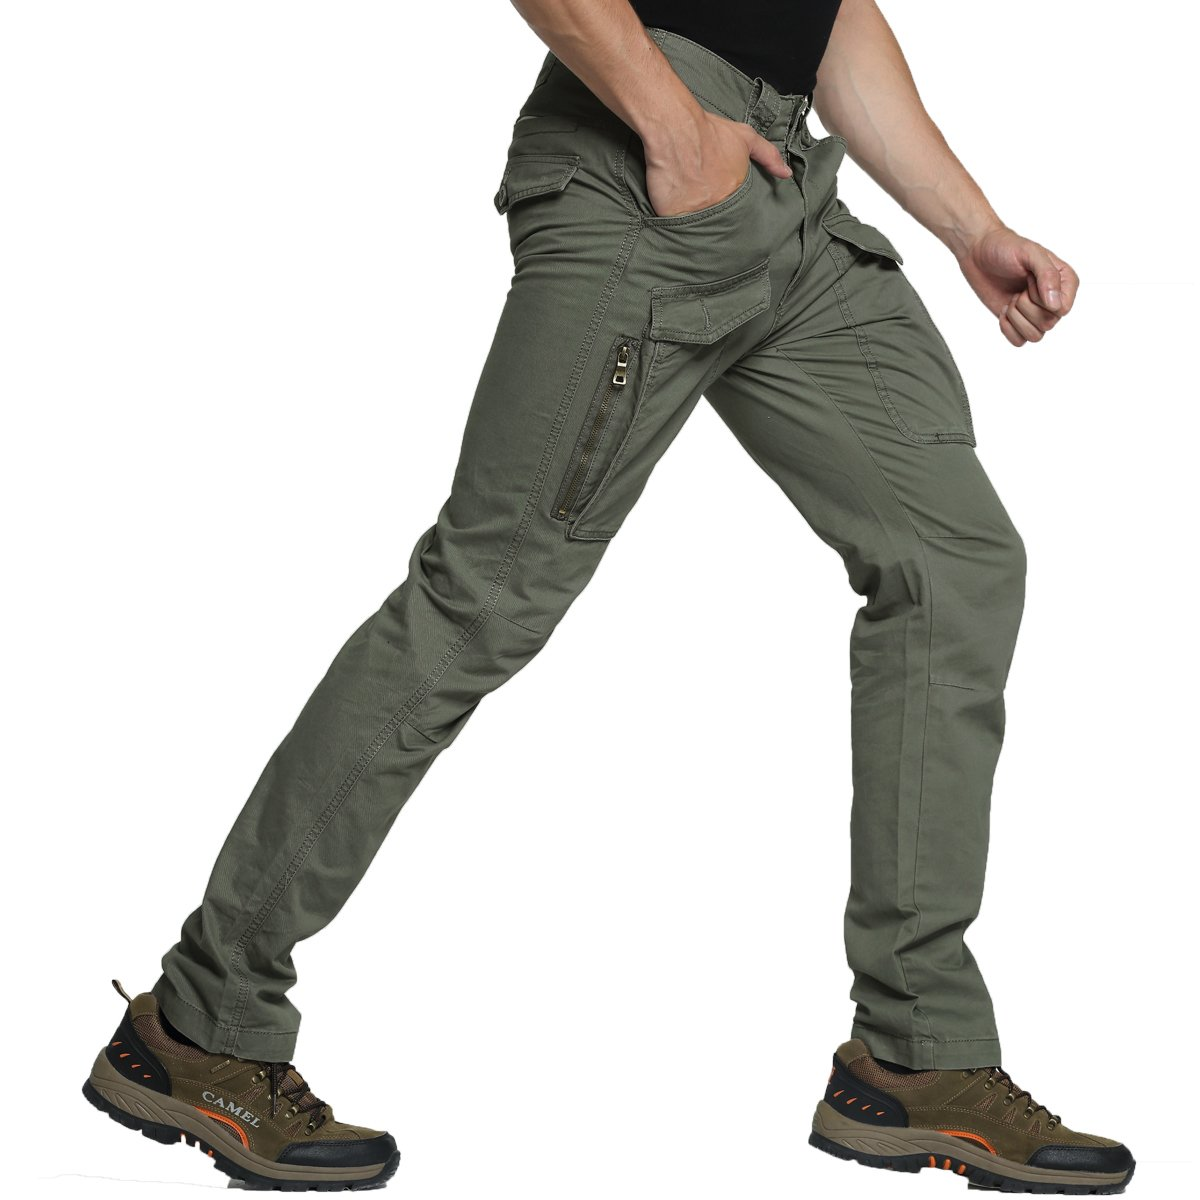 78bdd277019b8 With good quality durable zipper, this is a great tactical pants for all  seasons. Specially designed for the outdoor enthusiasts and staff with  large enough ...